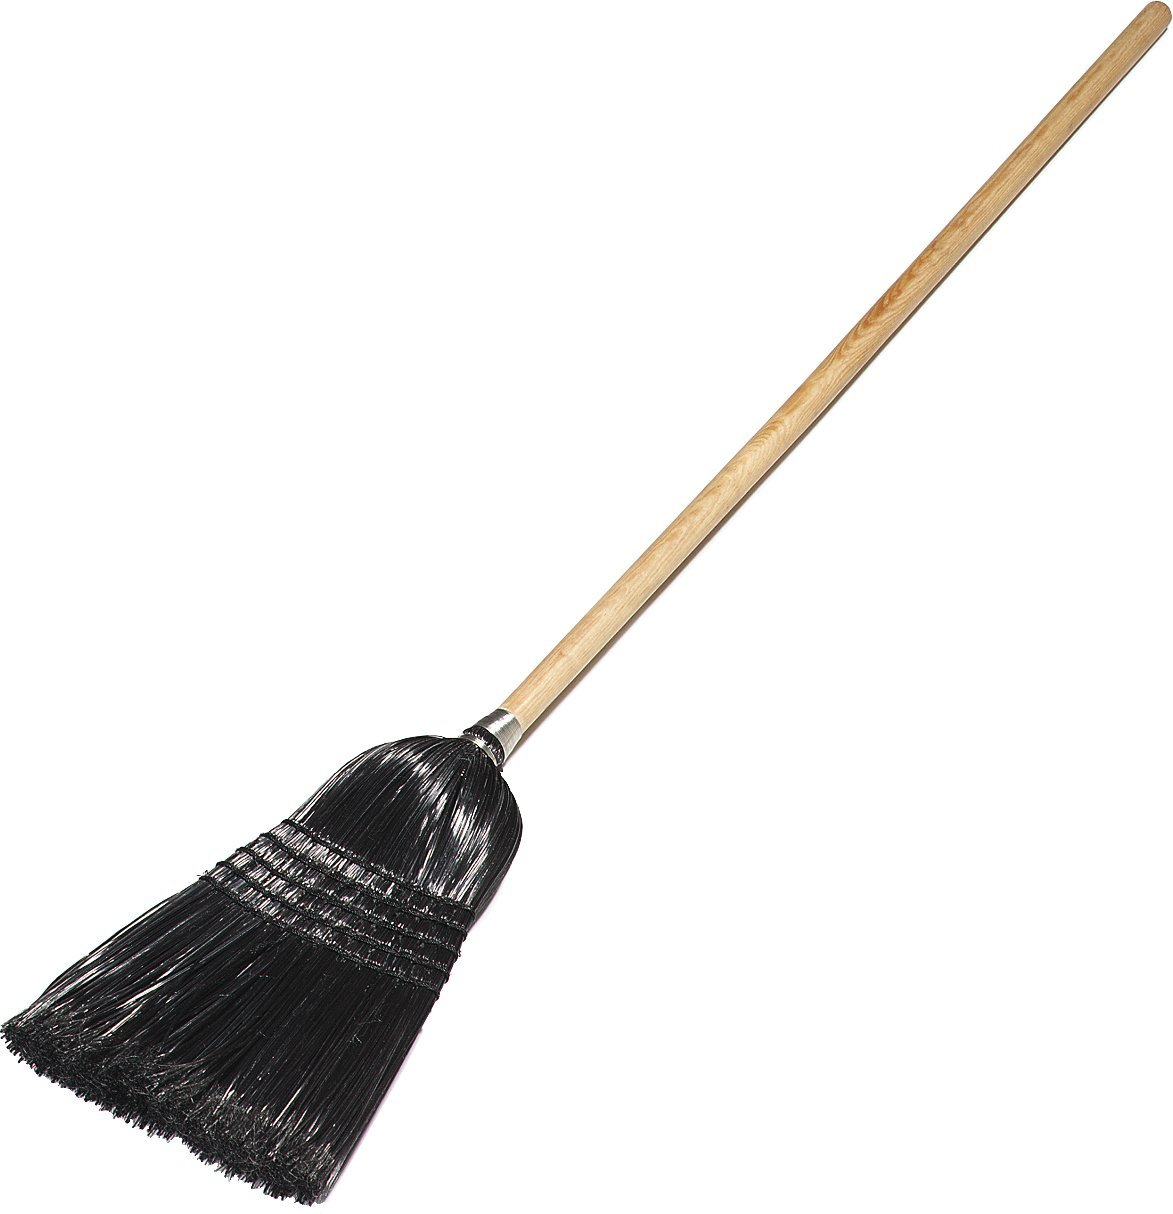 Carlisle 4168003 Synthetic Corn Maid/Parlor Broom with Wood Handle, Polypropylene Bristles, 55'' Overall Length, Black (Case of 12)